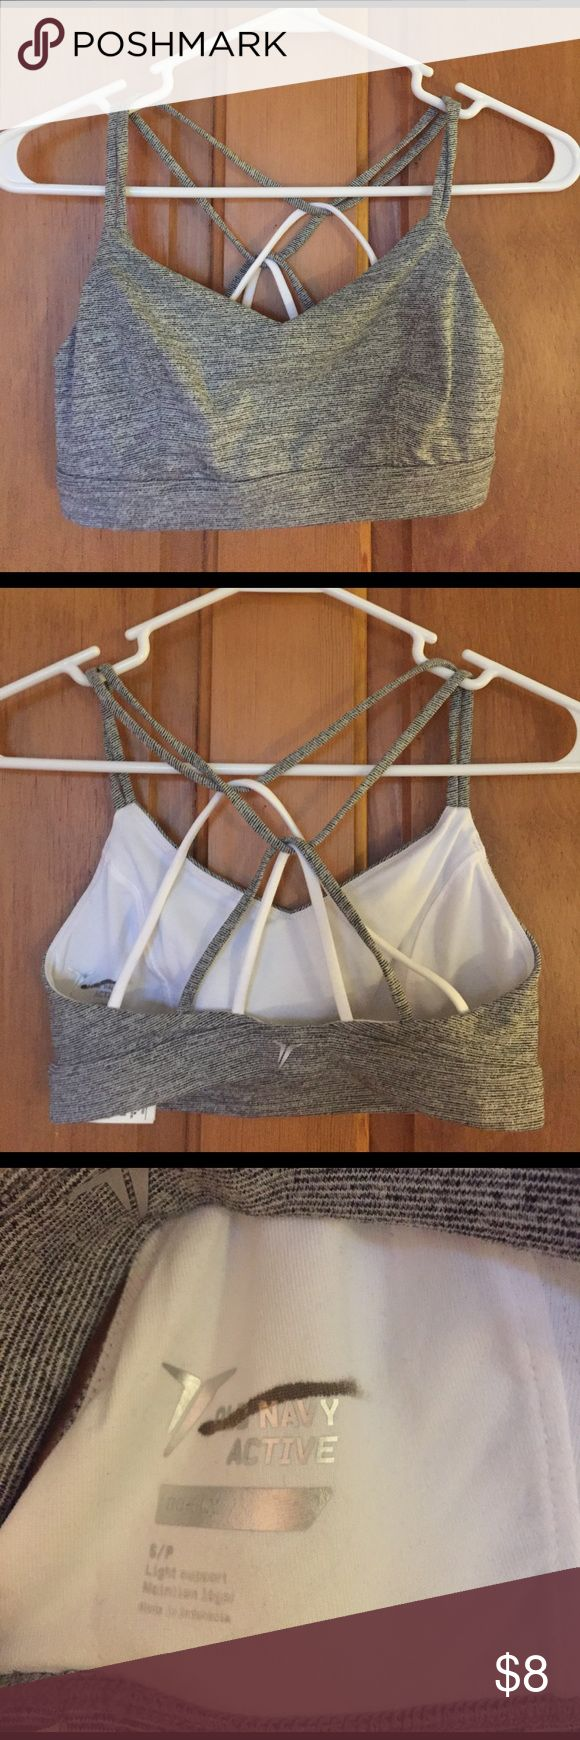 *SALE* NWOT old navy sports bra Gray striped straps sports bra. Great for yoga! Very comfortable, it was just a bit too tight! Fits more like an xs. Never worn. Old Navy Intimates & Sleepwear Bras